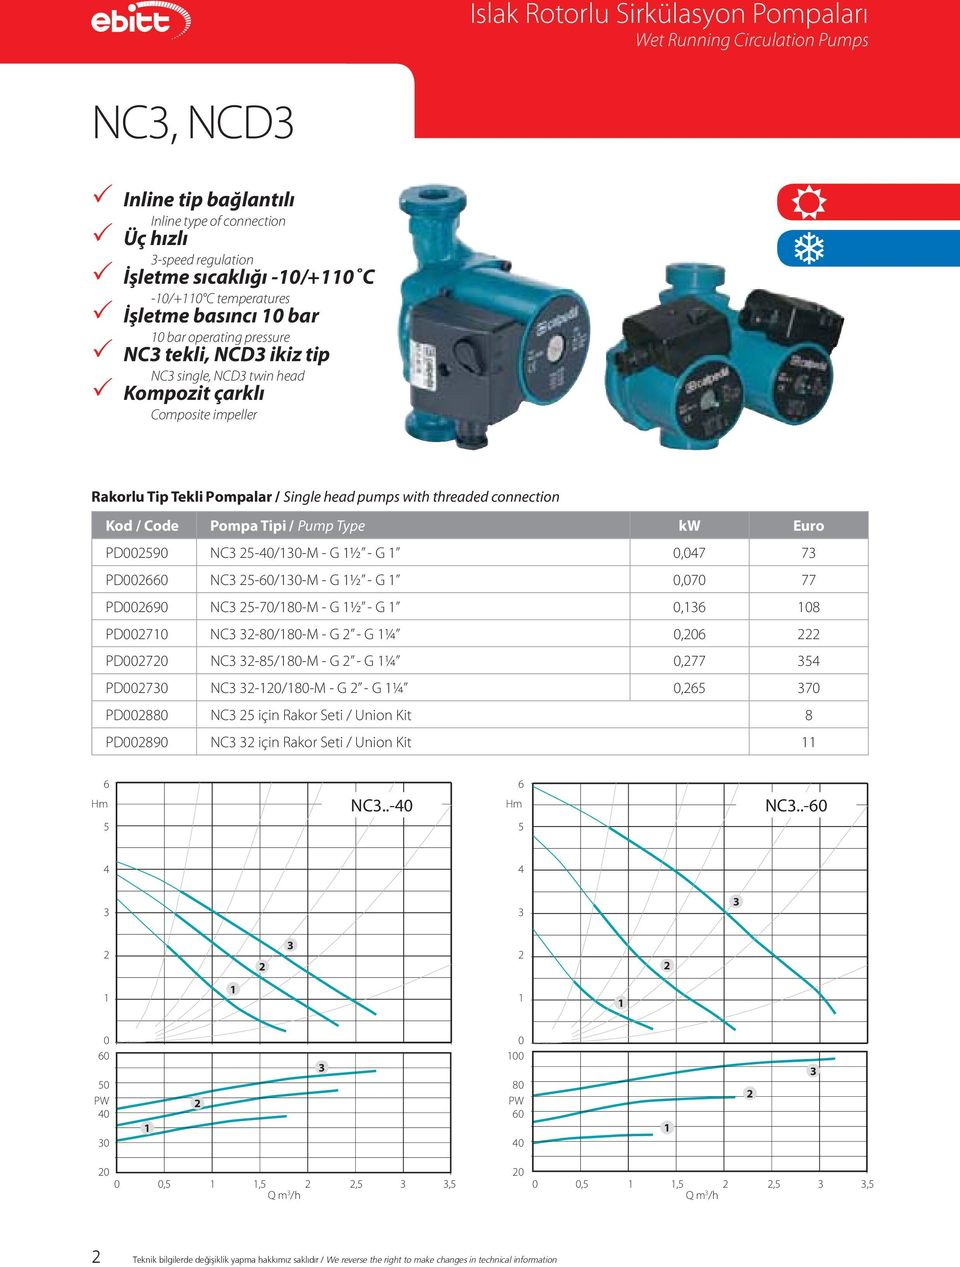 pumps with threaded connection Kod / Code Pompa Tipi / Pump Type kw Euro PD002590 NC3 25-40/130-M - G 1½ - G 1 0,047 73 PD002660 NC3 25-60/130-M - G 1½ - G 1 0,070 77 PD002690 NC3 25-70/180-M - G 1½